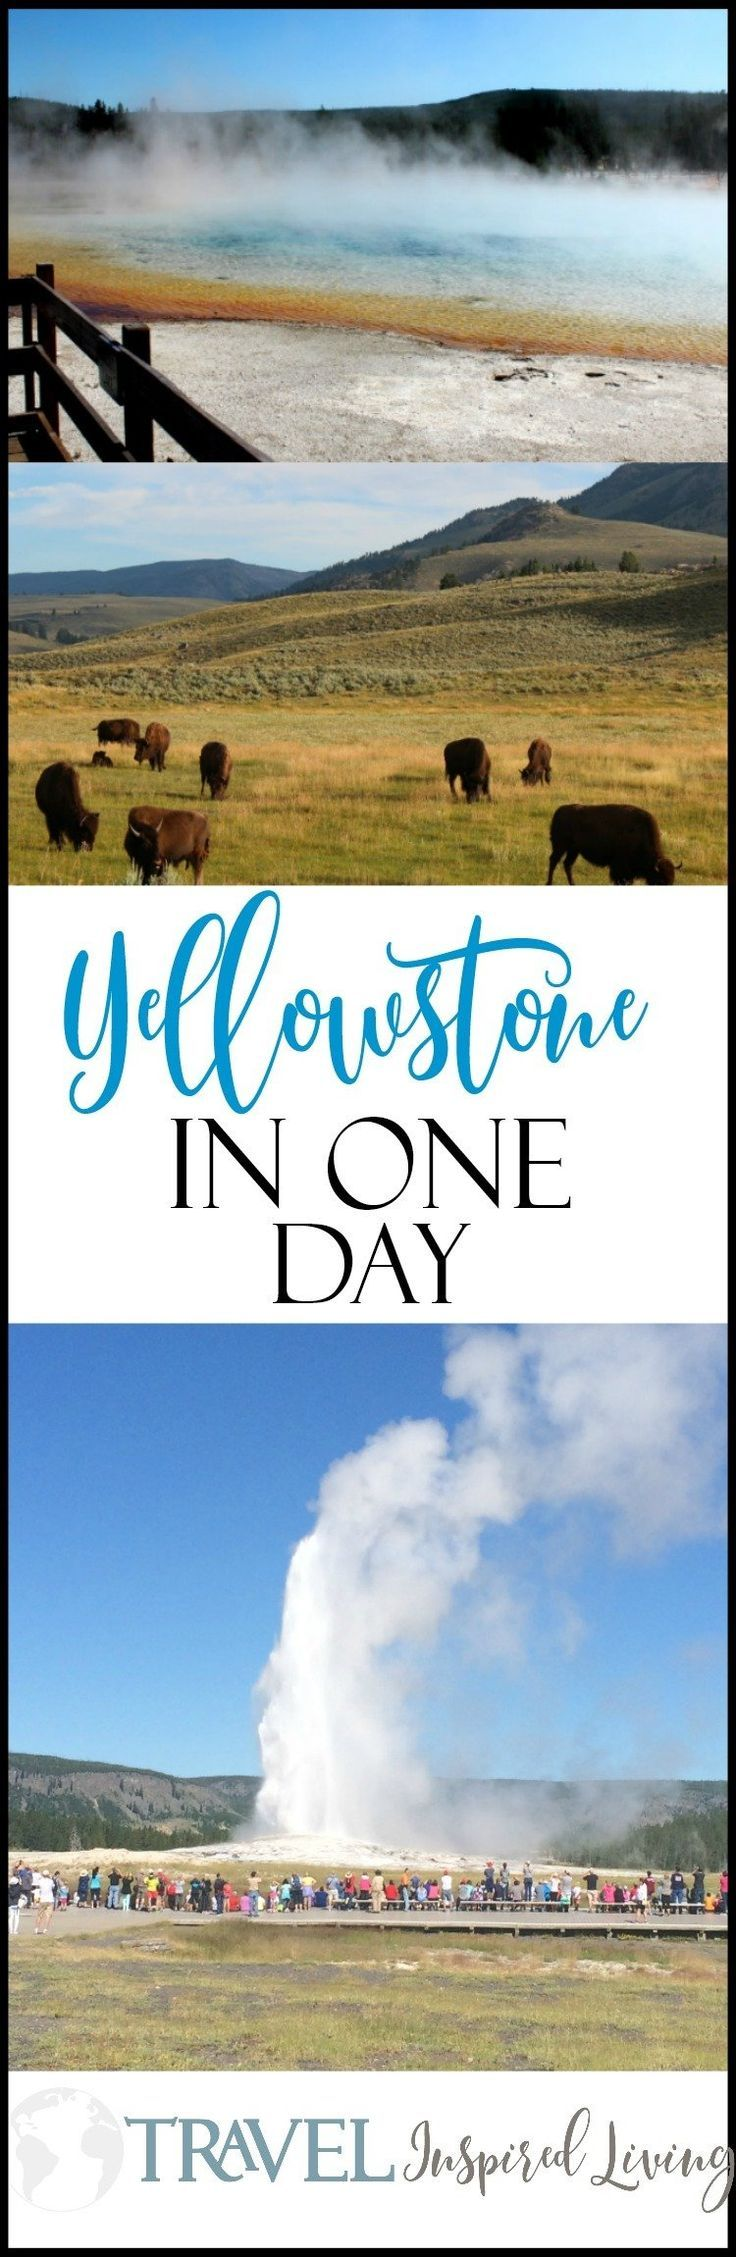 Planning a trip to Yellowstone National Park in the United States, but have limited time to explore? It is possible to experience Yellowstone in one day. Here's how.